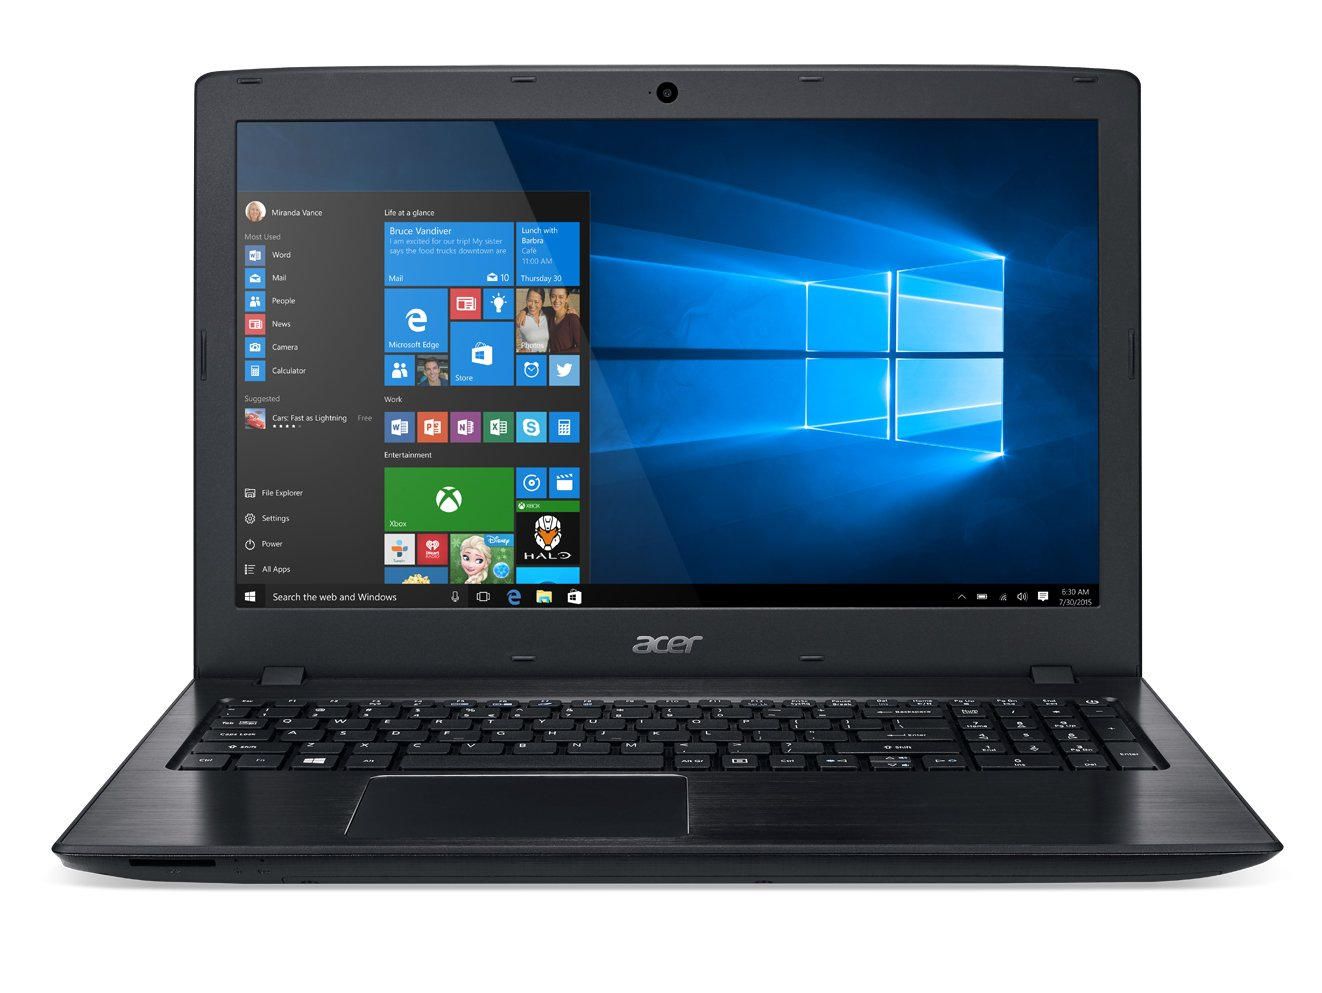 Acer Aspire E5-575G-75MD Review